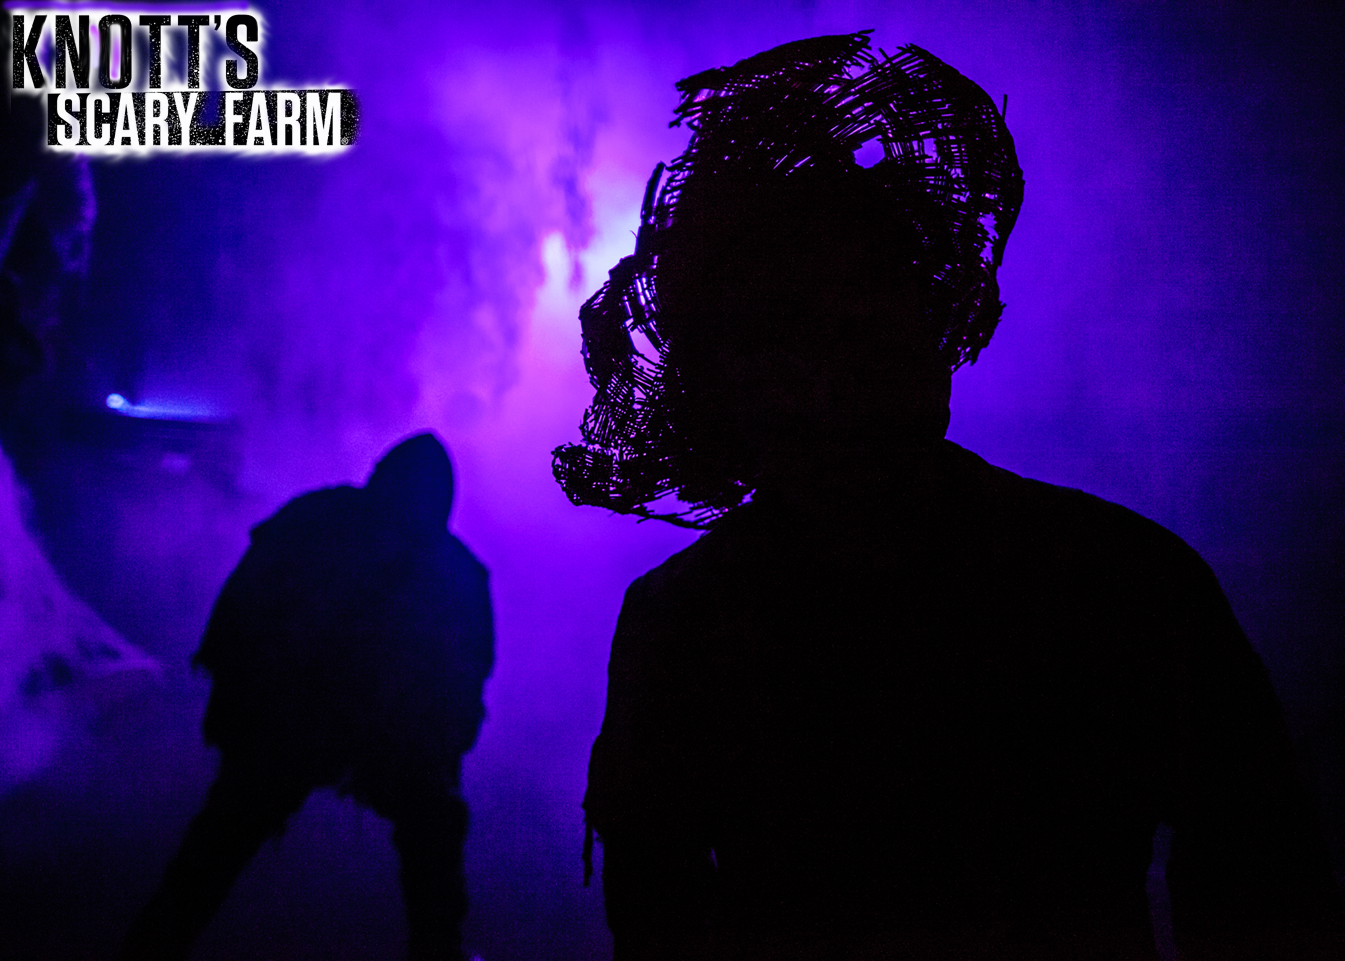 the knotts berry farm halloween haunt begins its annual season of scares on thursday september 21 with subsequent dates on september 22 23 28 30 - Halloween Haunt Schedule